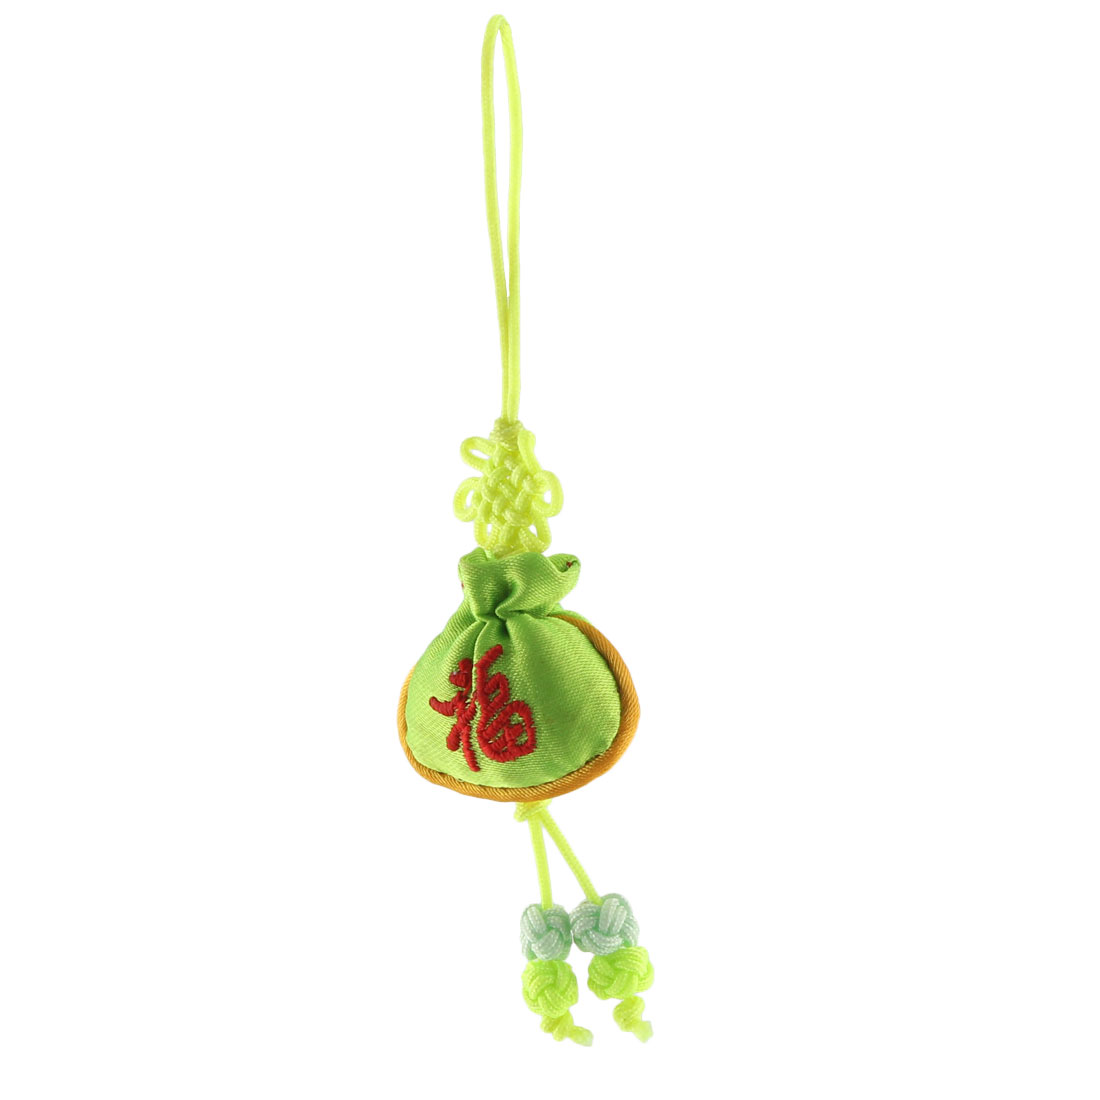 Household Mini Chinese Embroidery Luck Hanging Sachet Pendant Knot Light Green